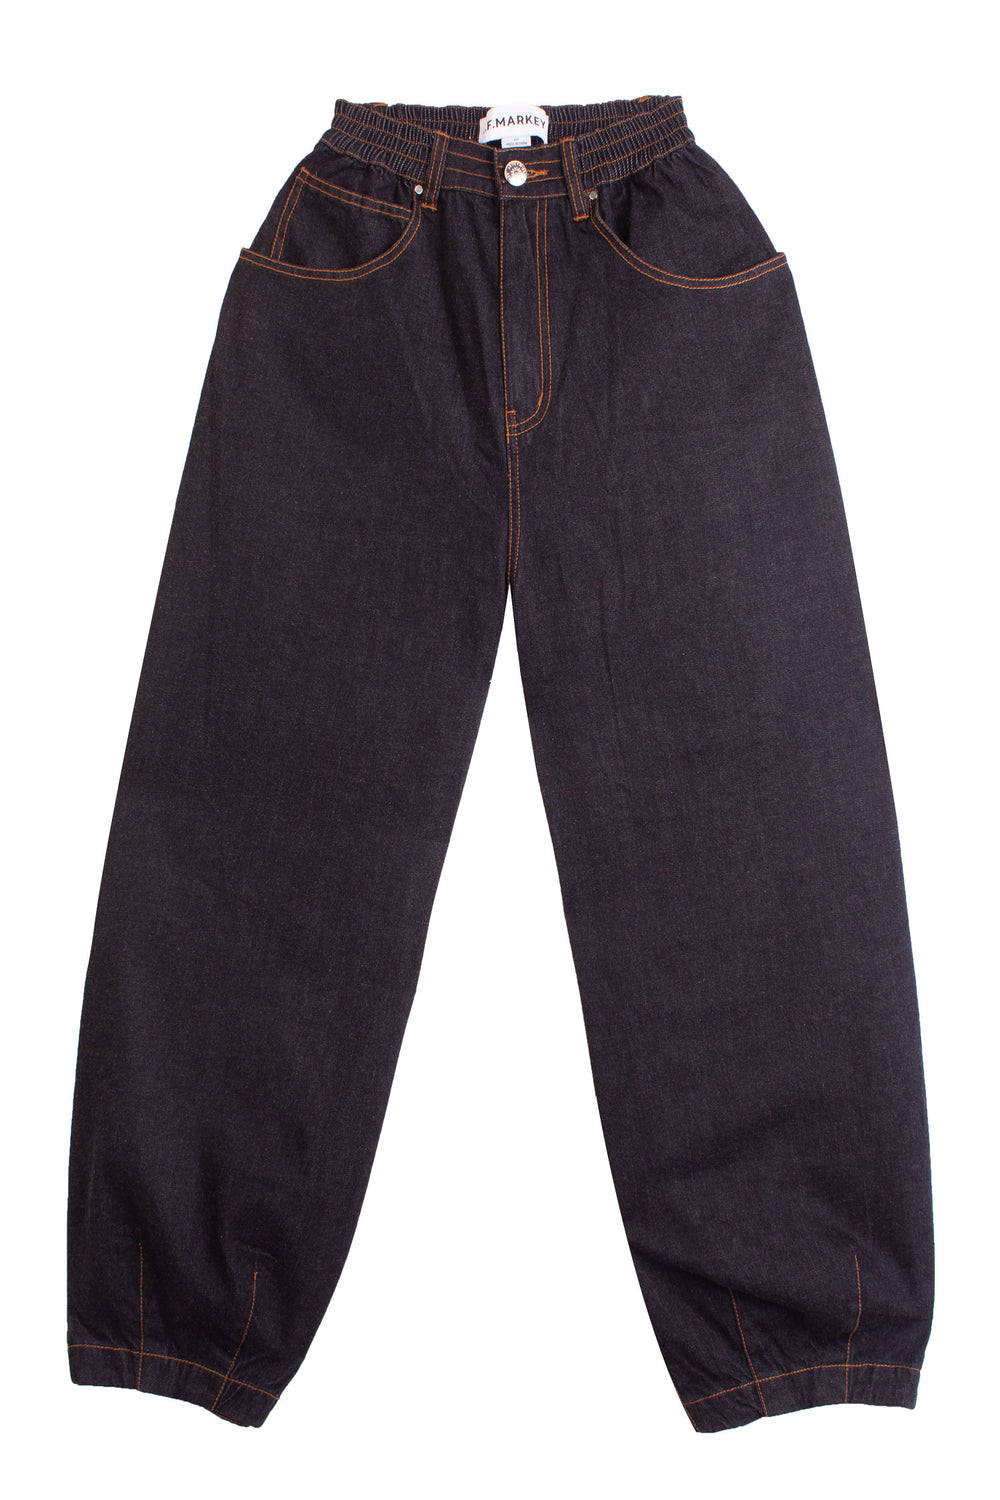 Fergus Jeans Black Denim